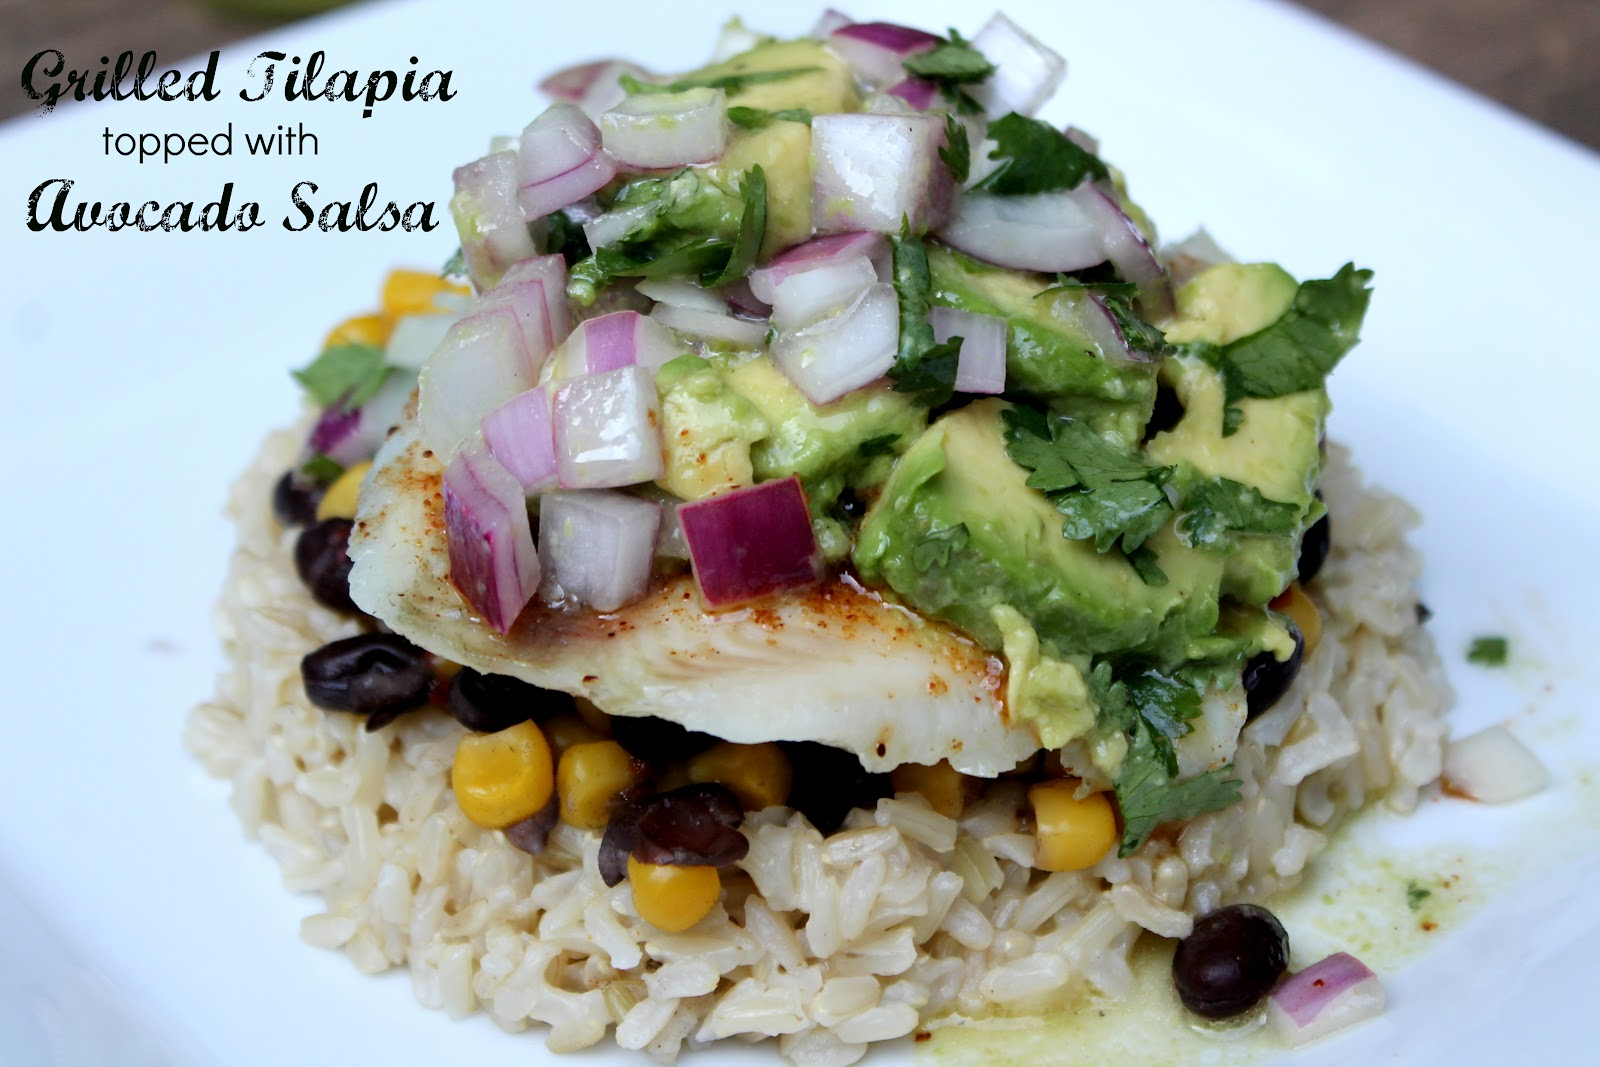 Grilled Tilapia with Avocado Salsa